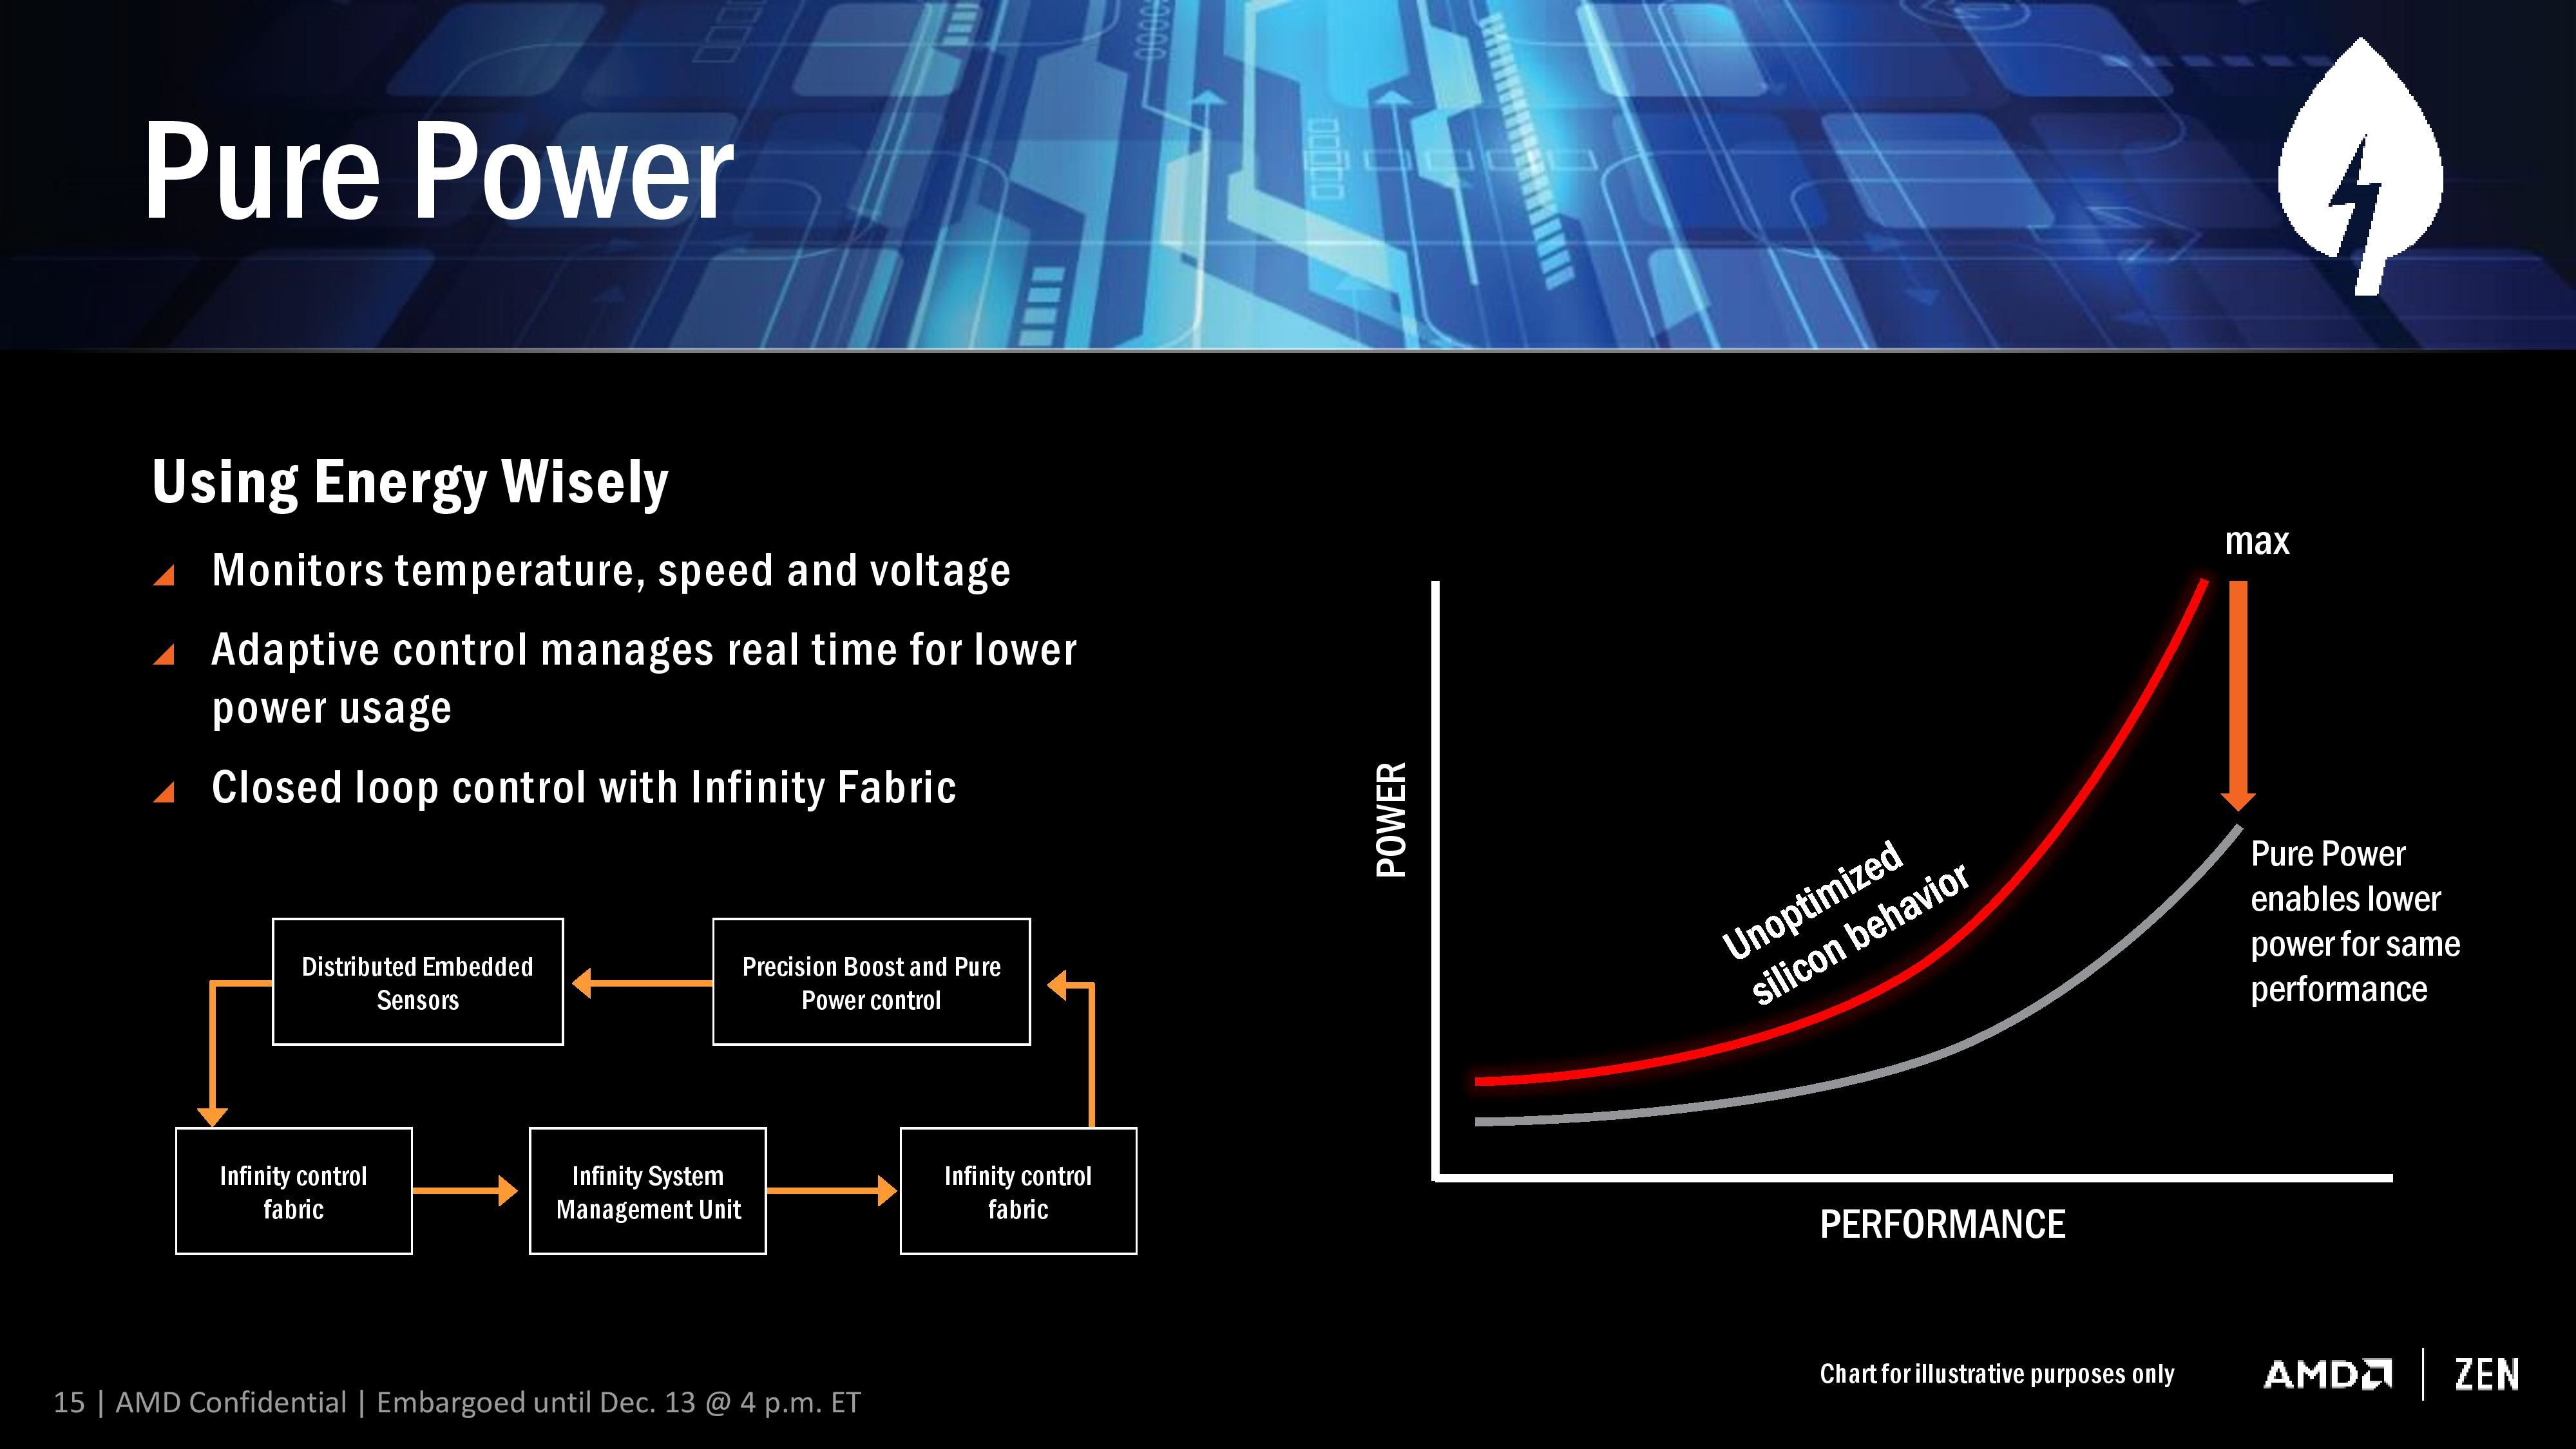 Amd S New Ryzen Balanced Power Plan Drivers Are Here Power Amd Pure Products